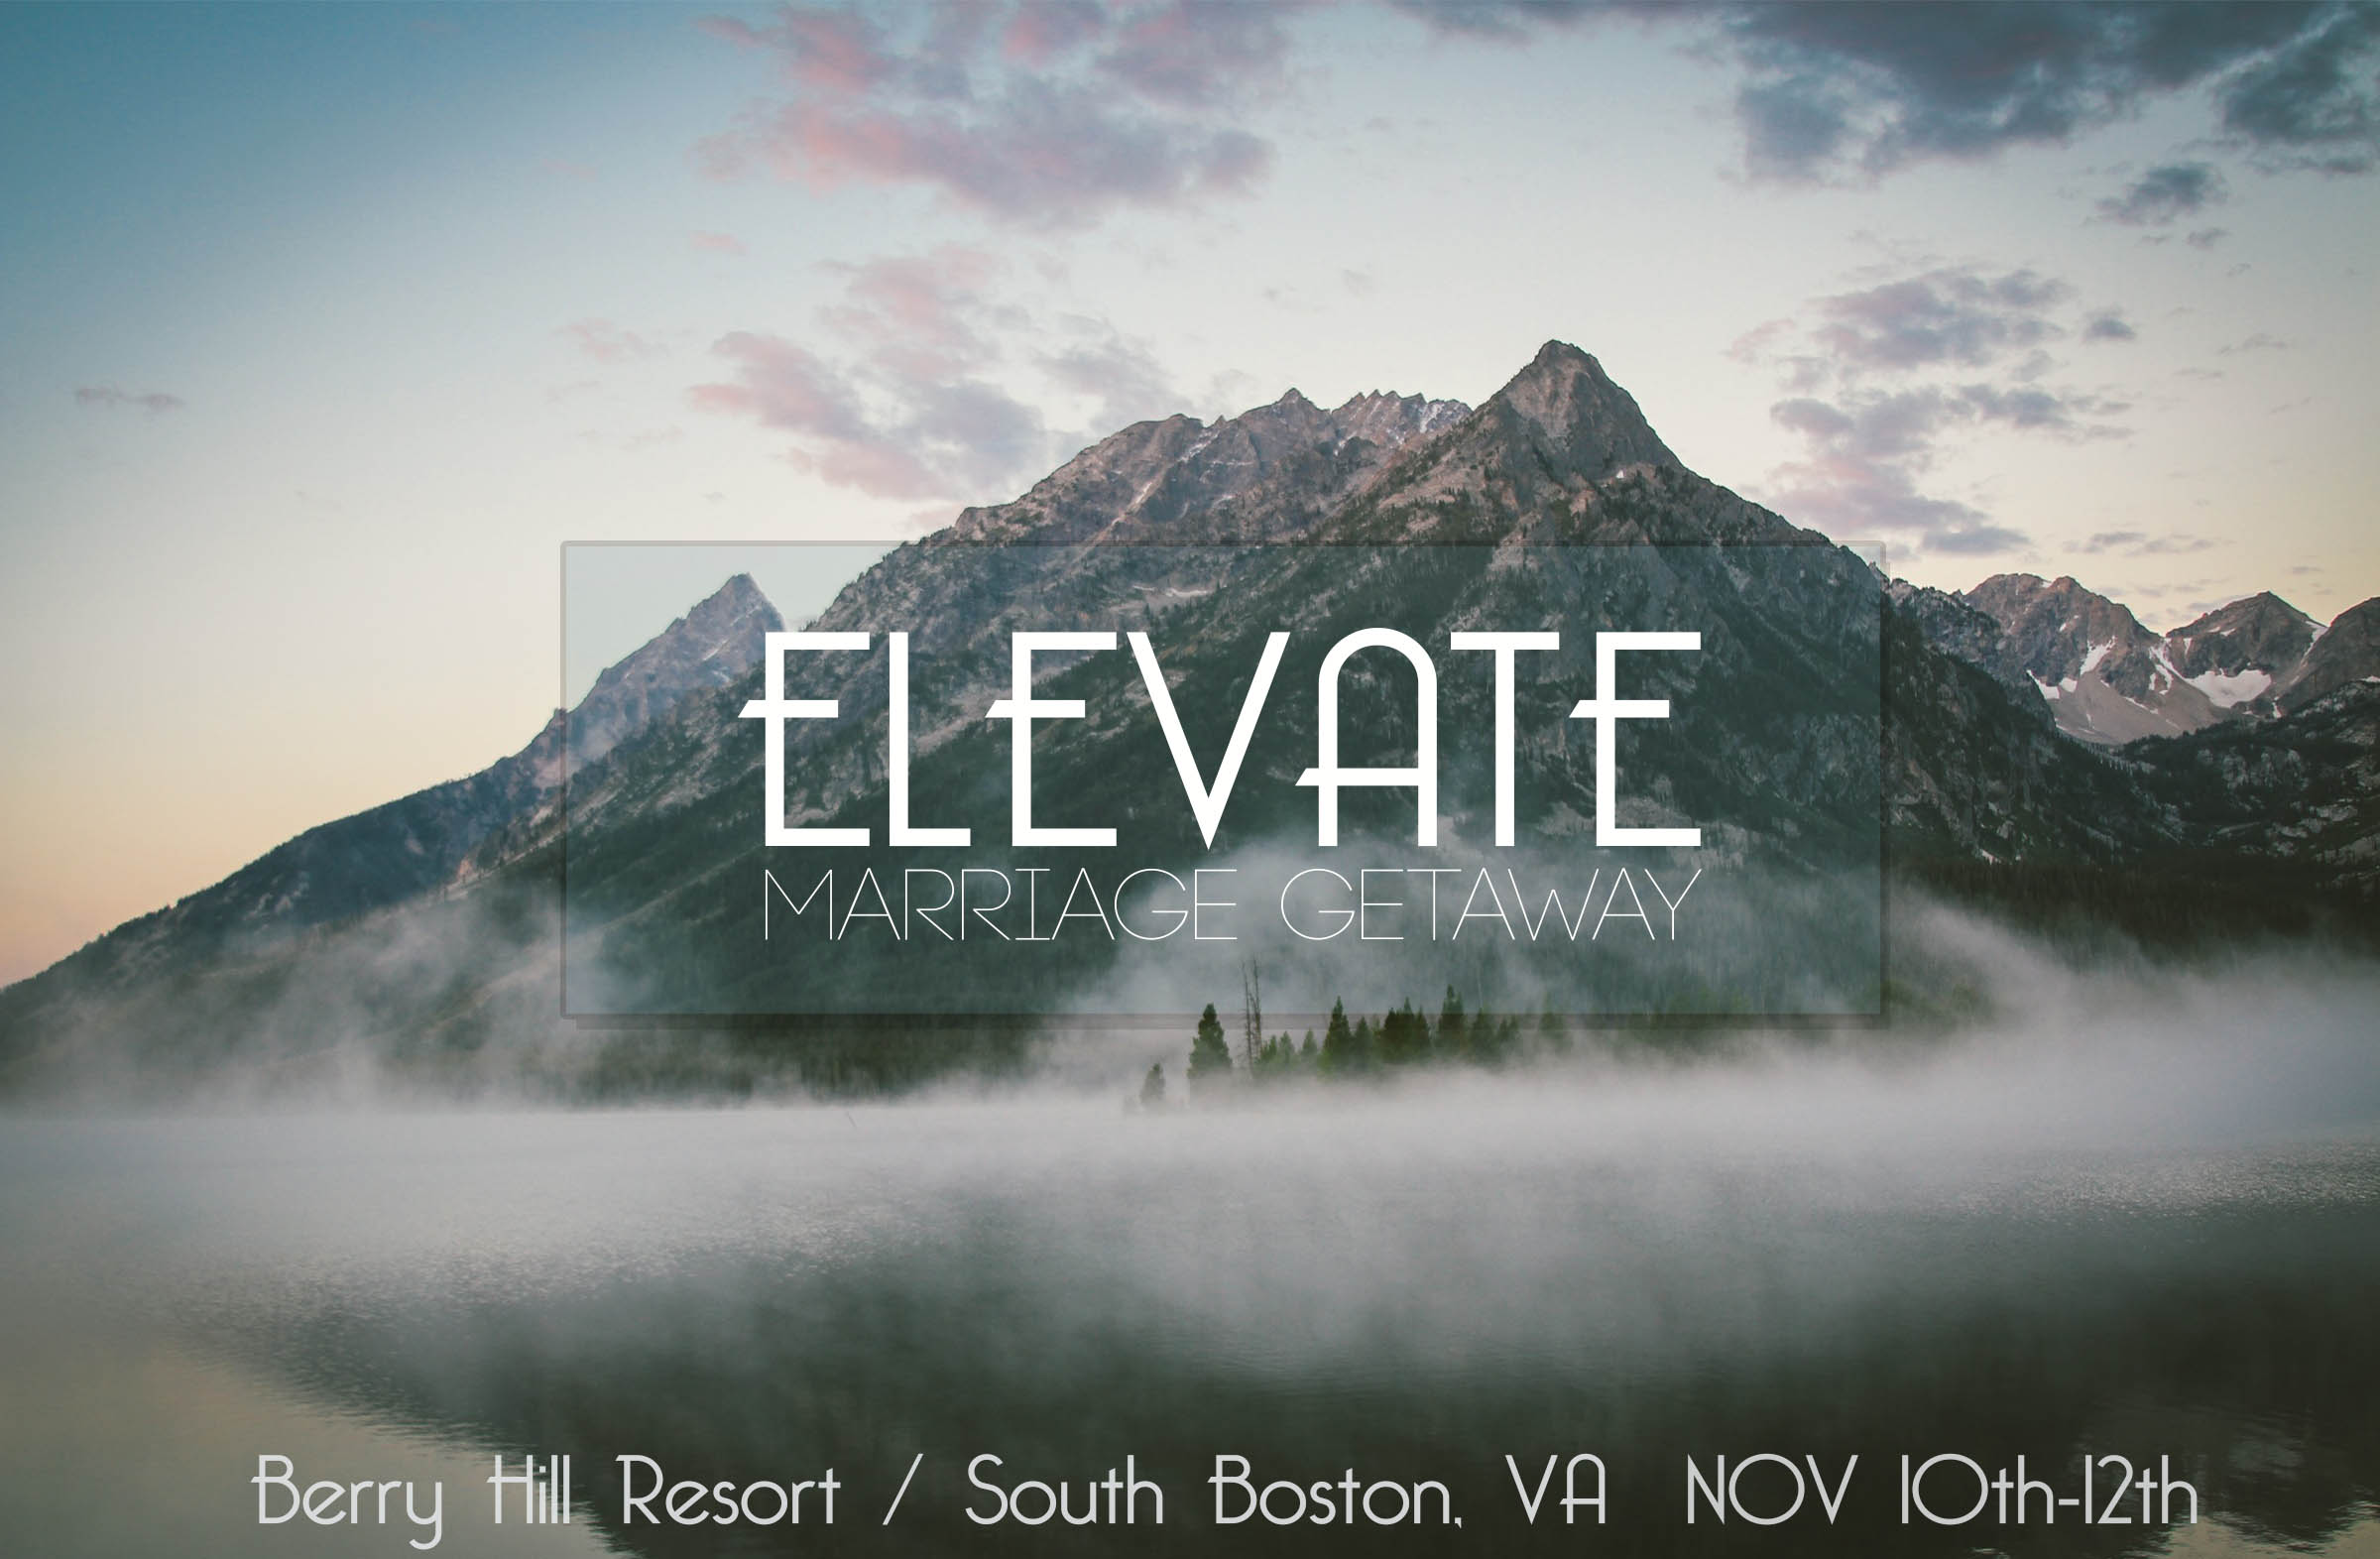 Elevate Marriage Getaway Berry Hill